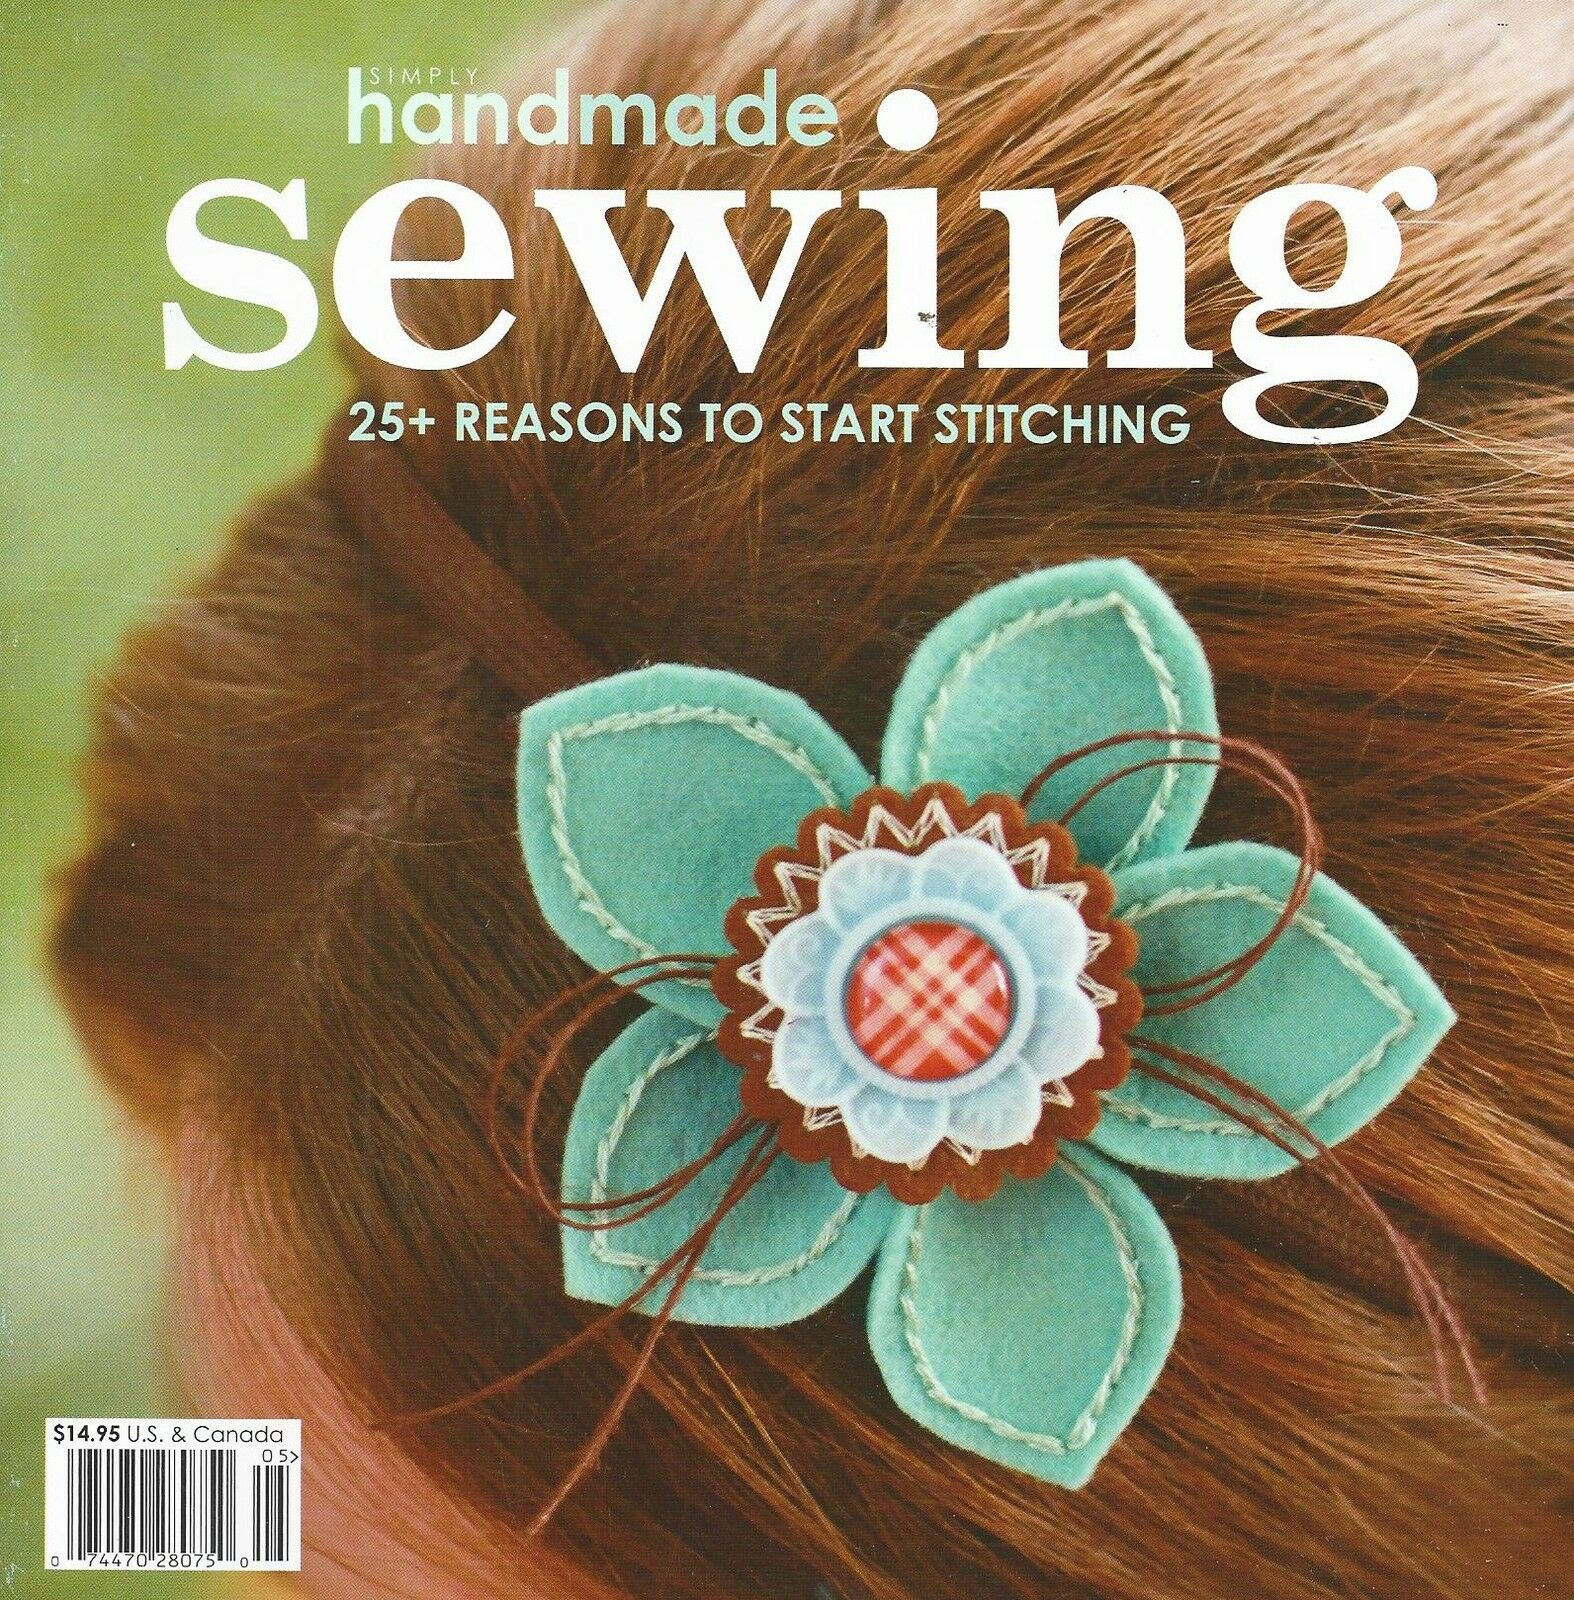 как выглядит SIMPLY HANDMADE SEWING  Idea Book by Northridge Publishing VOL.9 3 фото